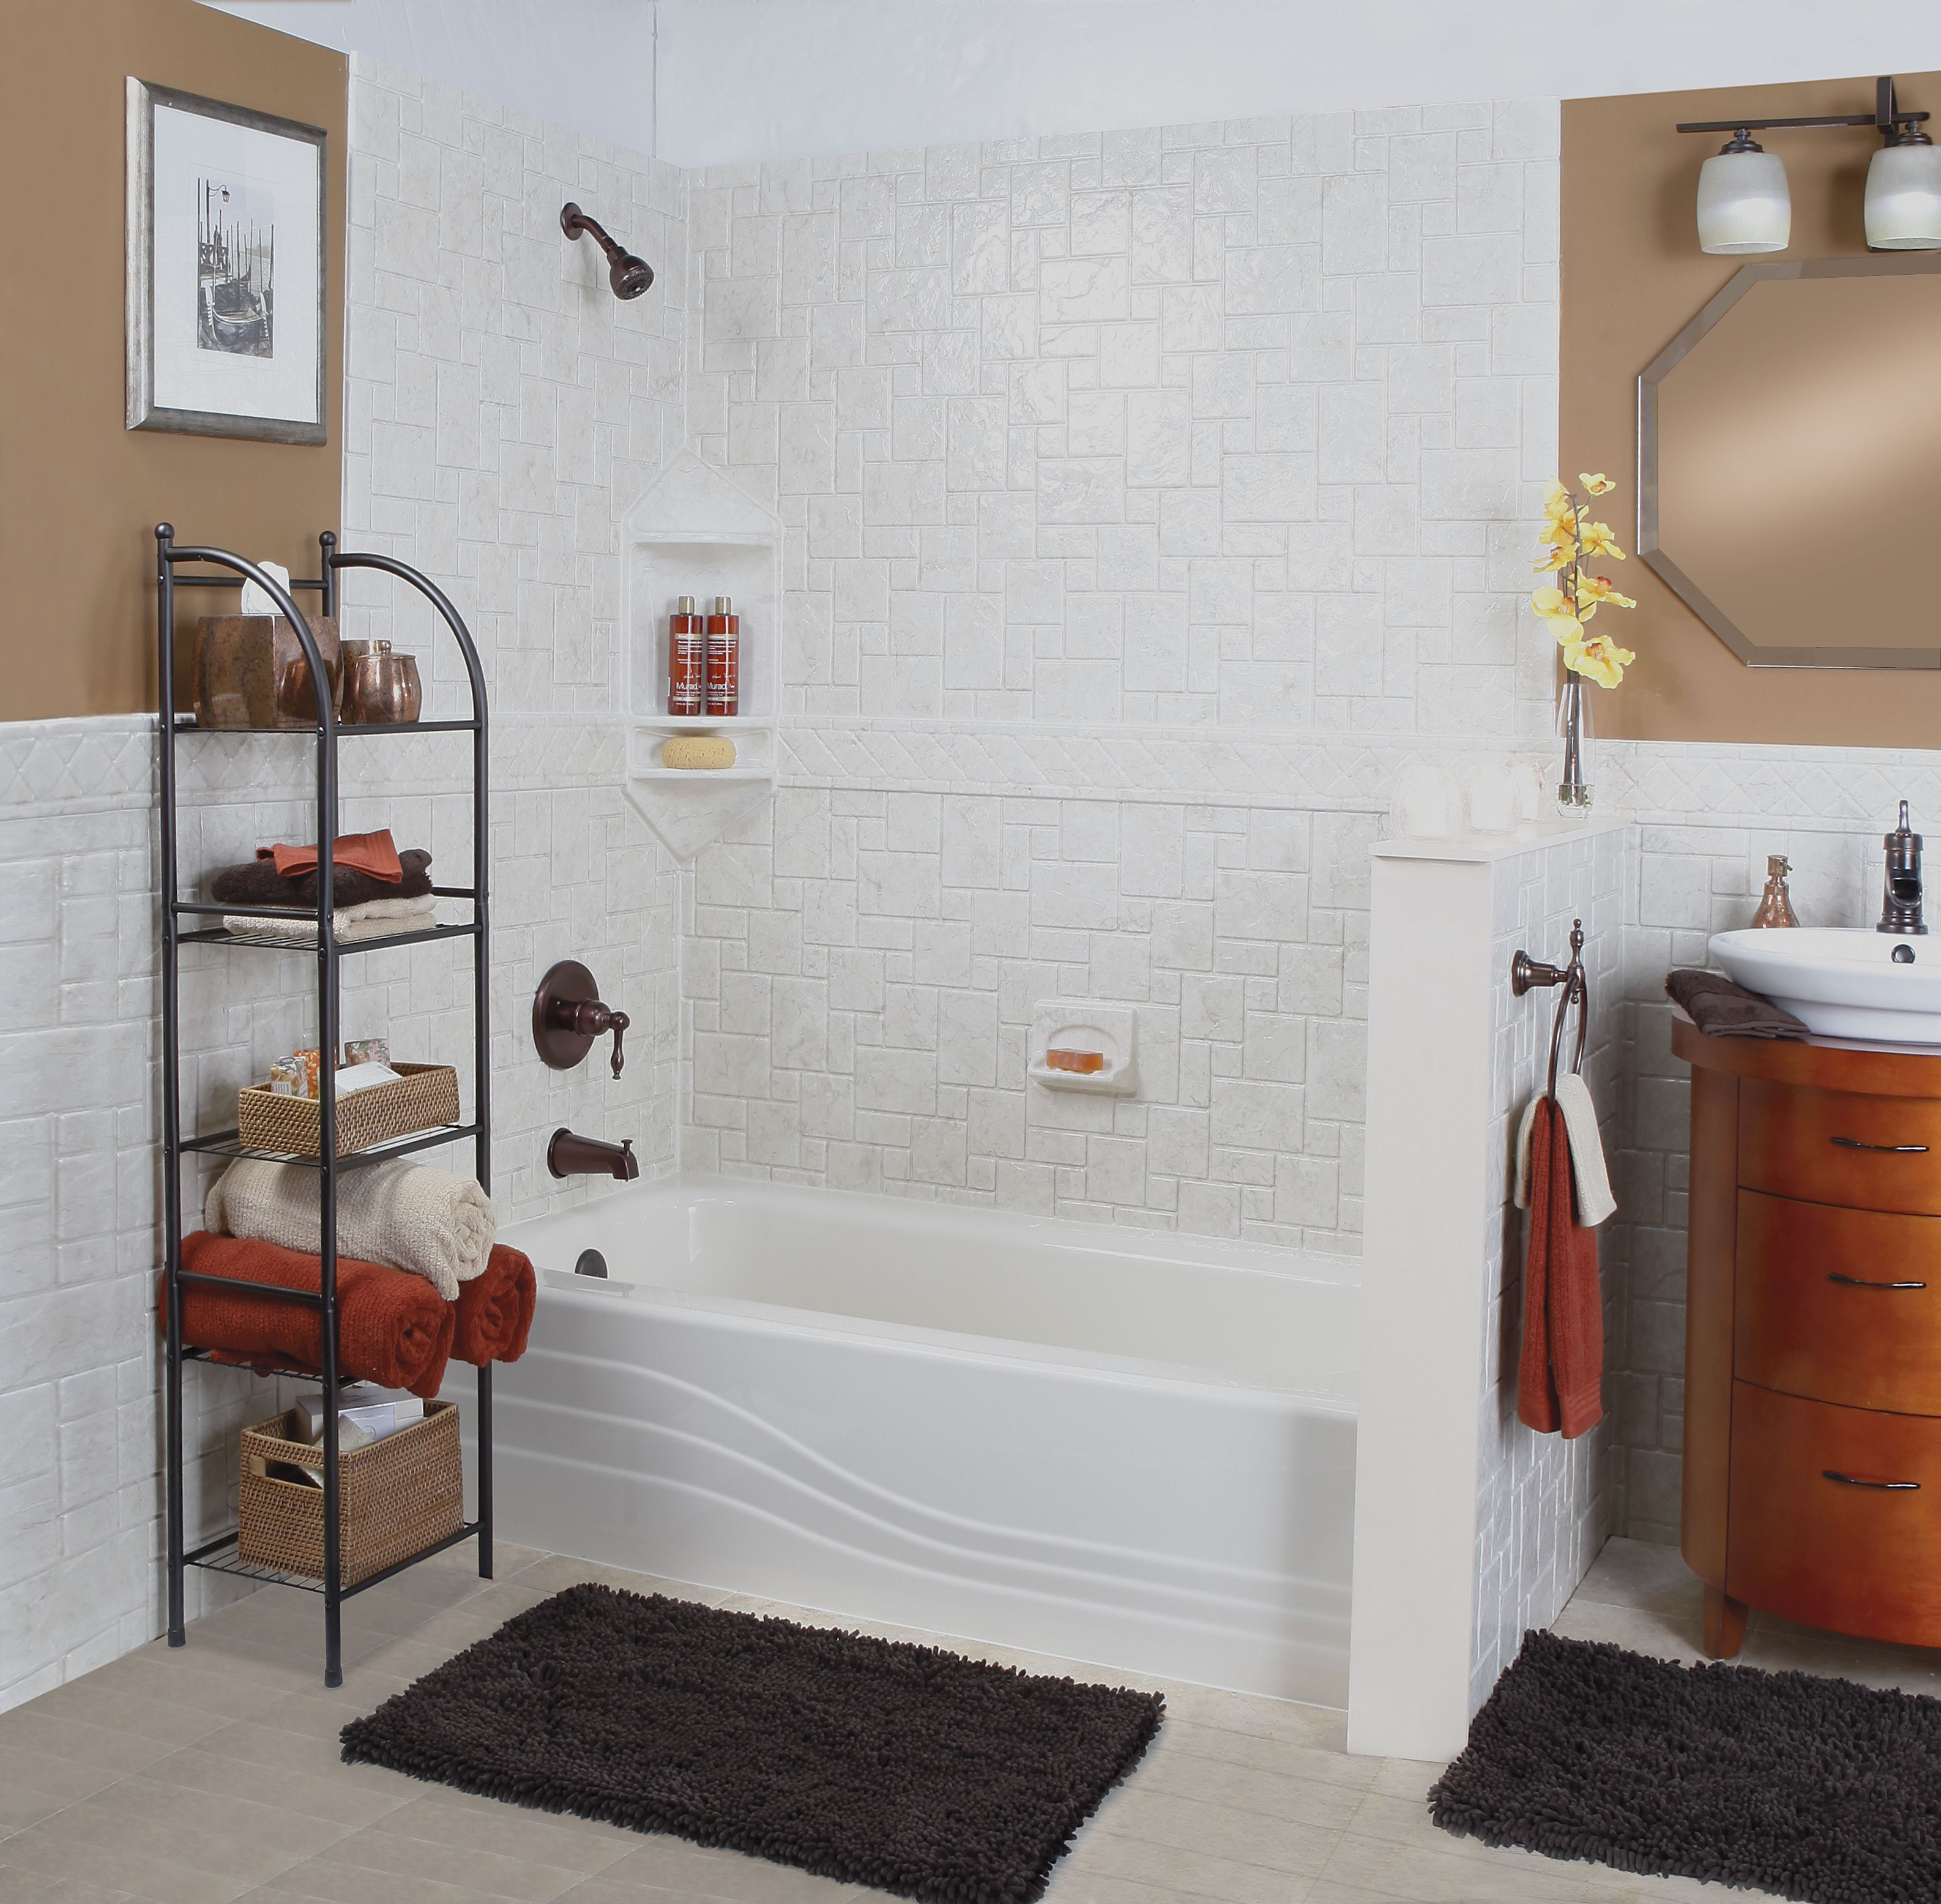 Httpbathroomsandbeyondau  Bathrooms Renovations Brisbane Brilliant How Much Does A Small Bathroom Remodel Cost Inspiration Design